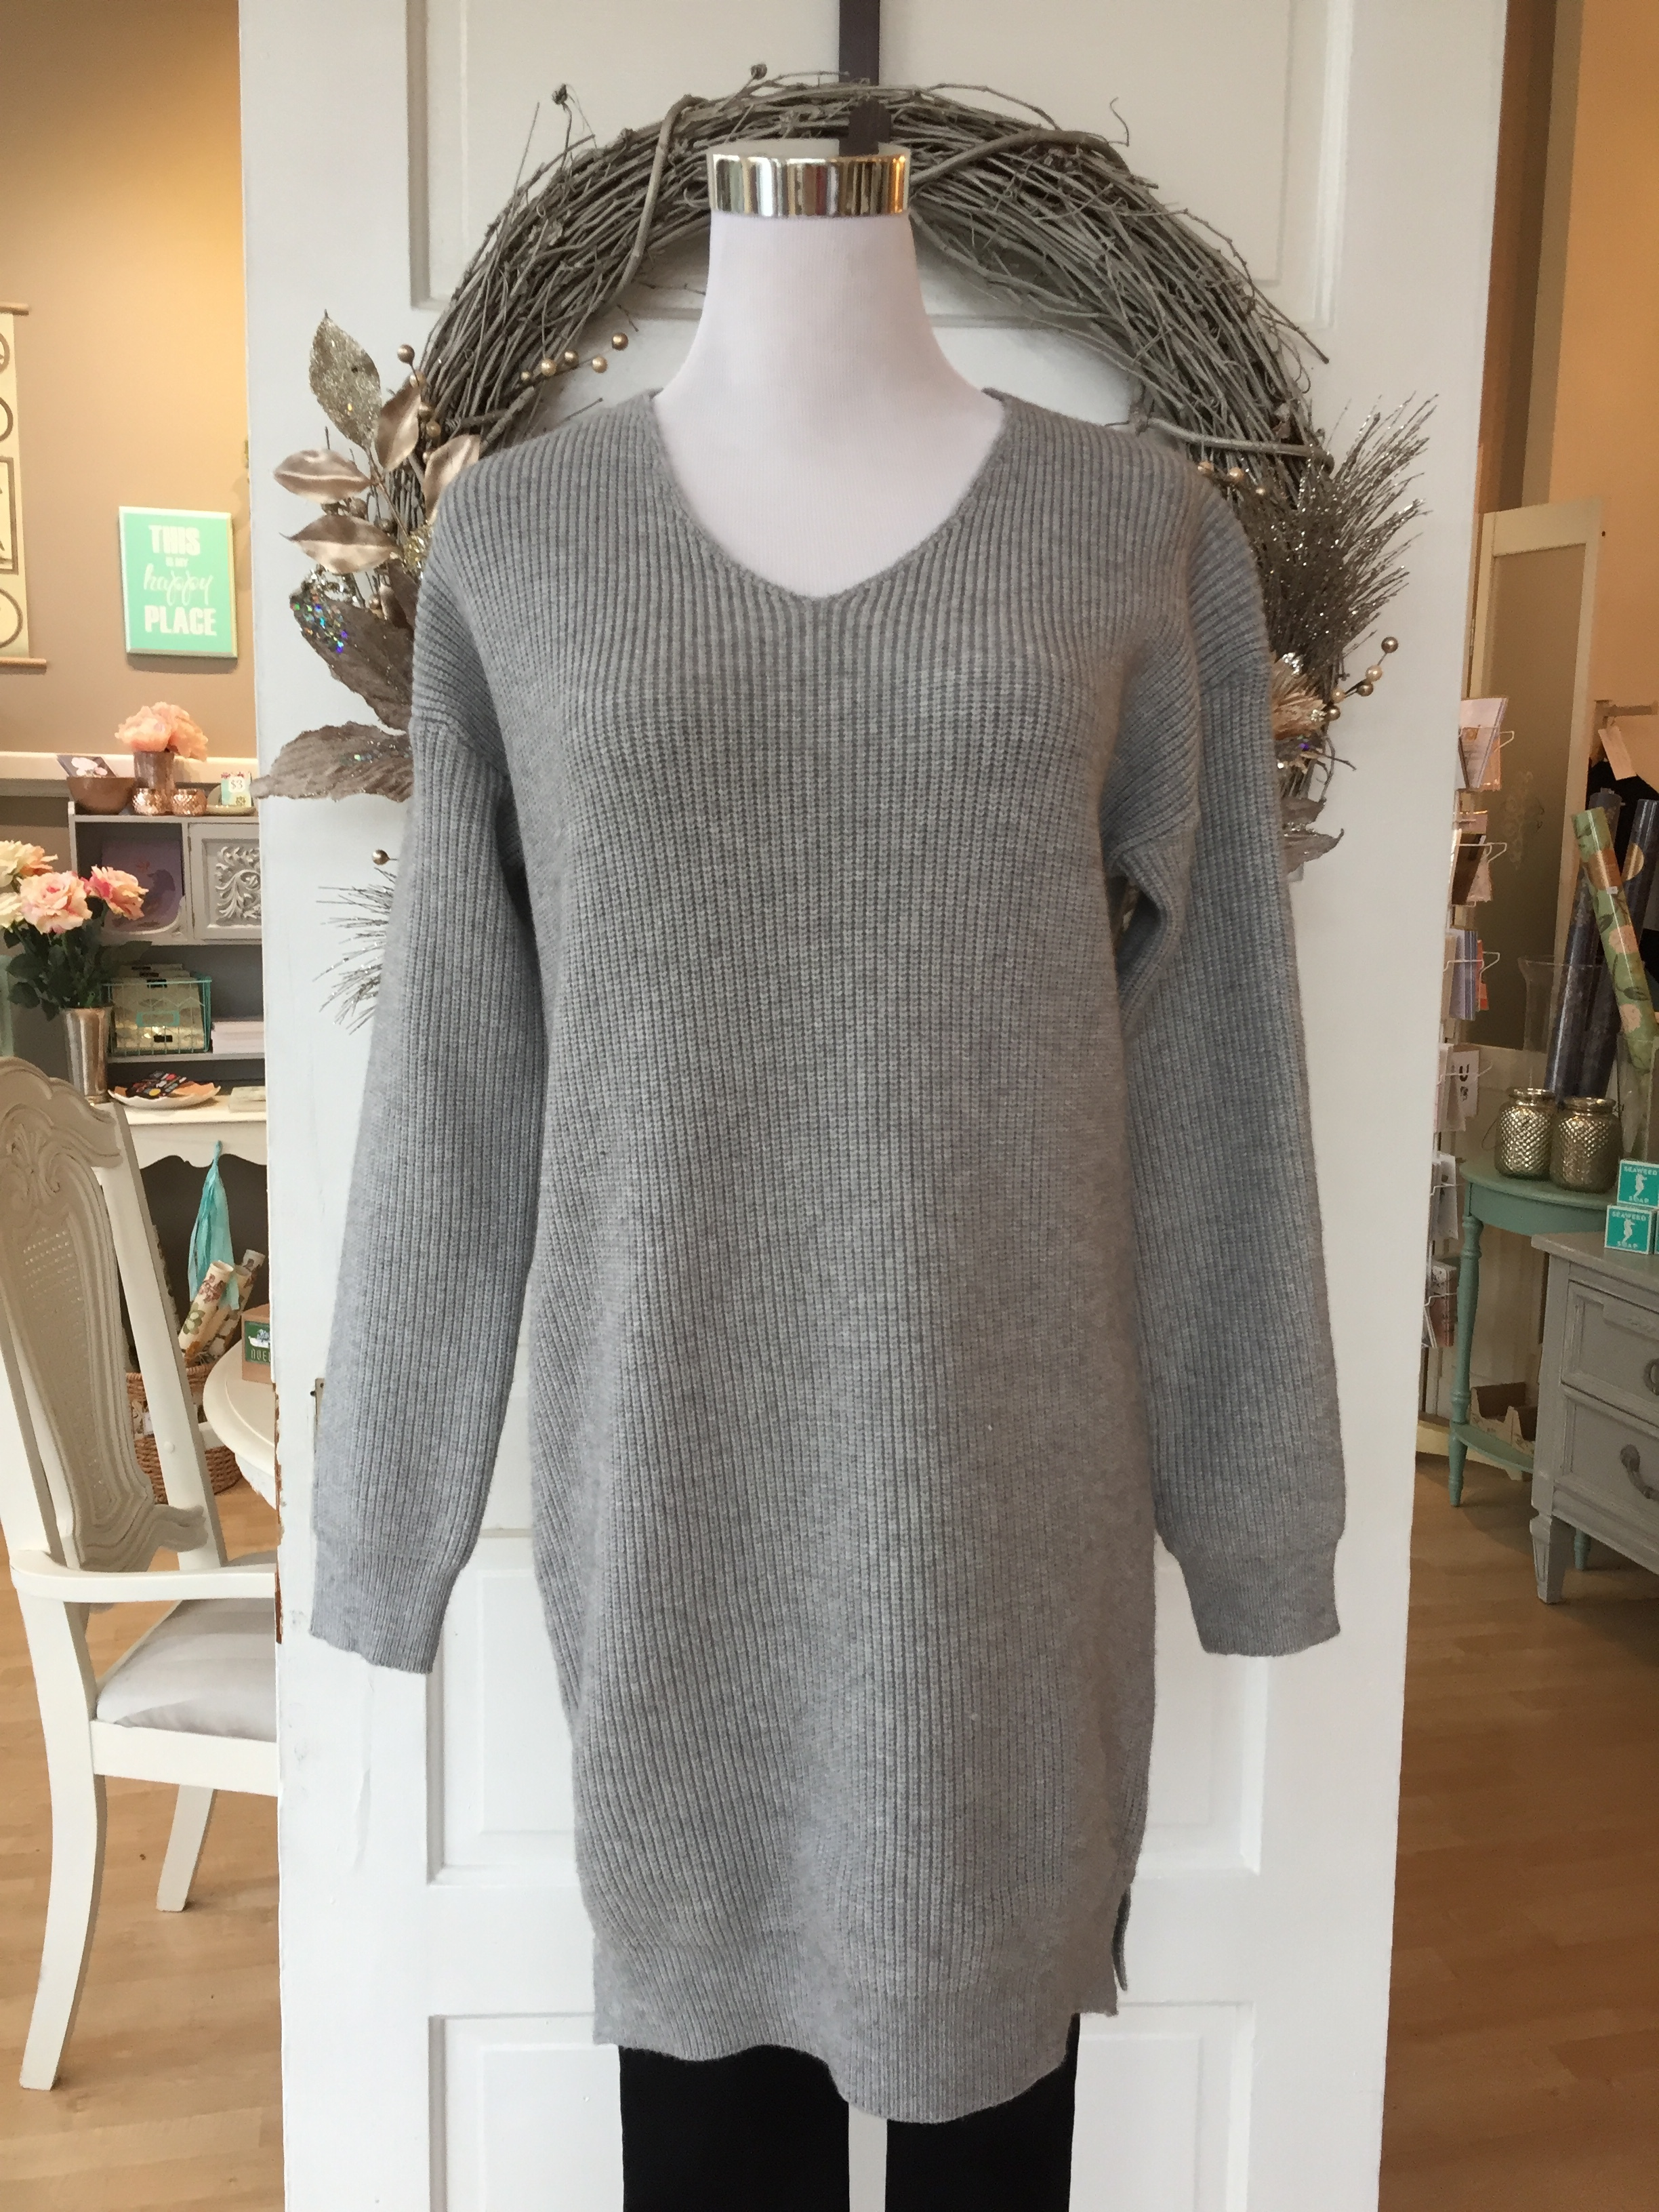 Dreamers Chunky Knit Sweater $42